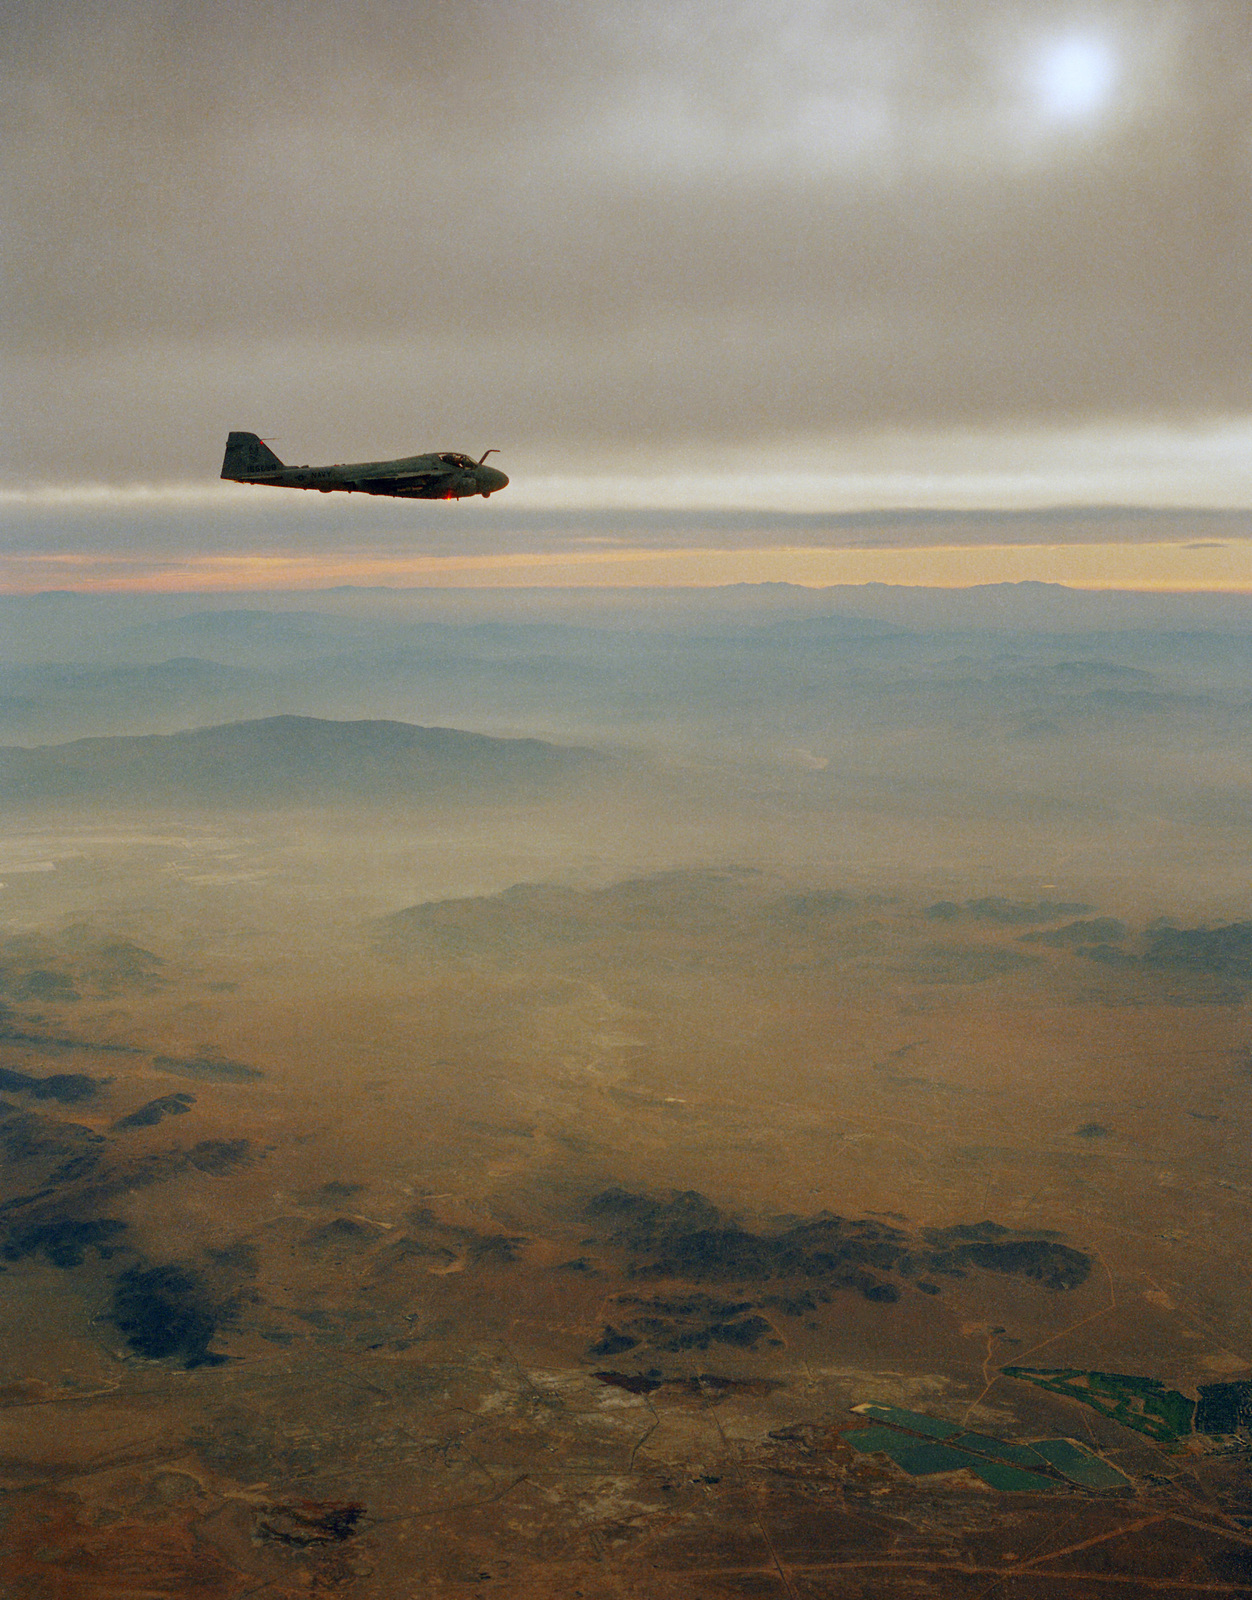 An A-6E Intruder aircraft in flight over the Naval Weapons Center, China Lake, California, during an early morning test flight